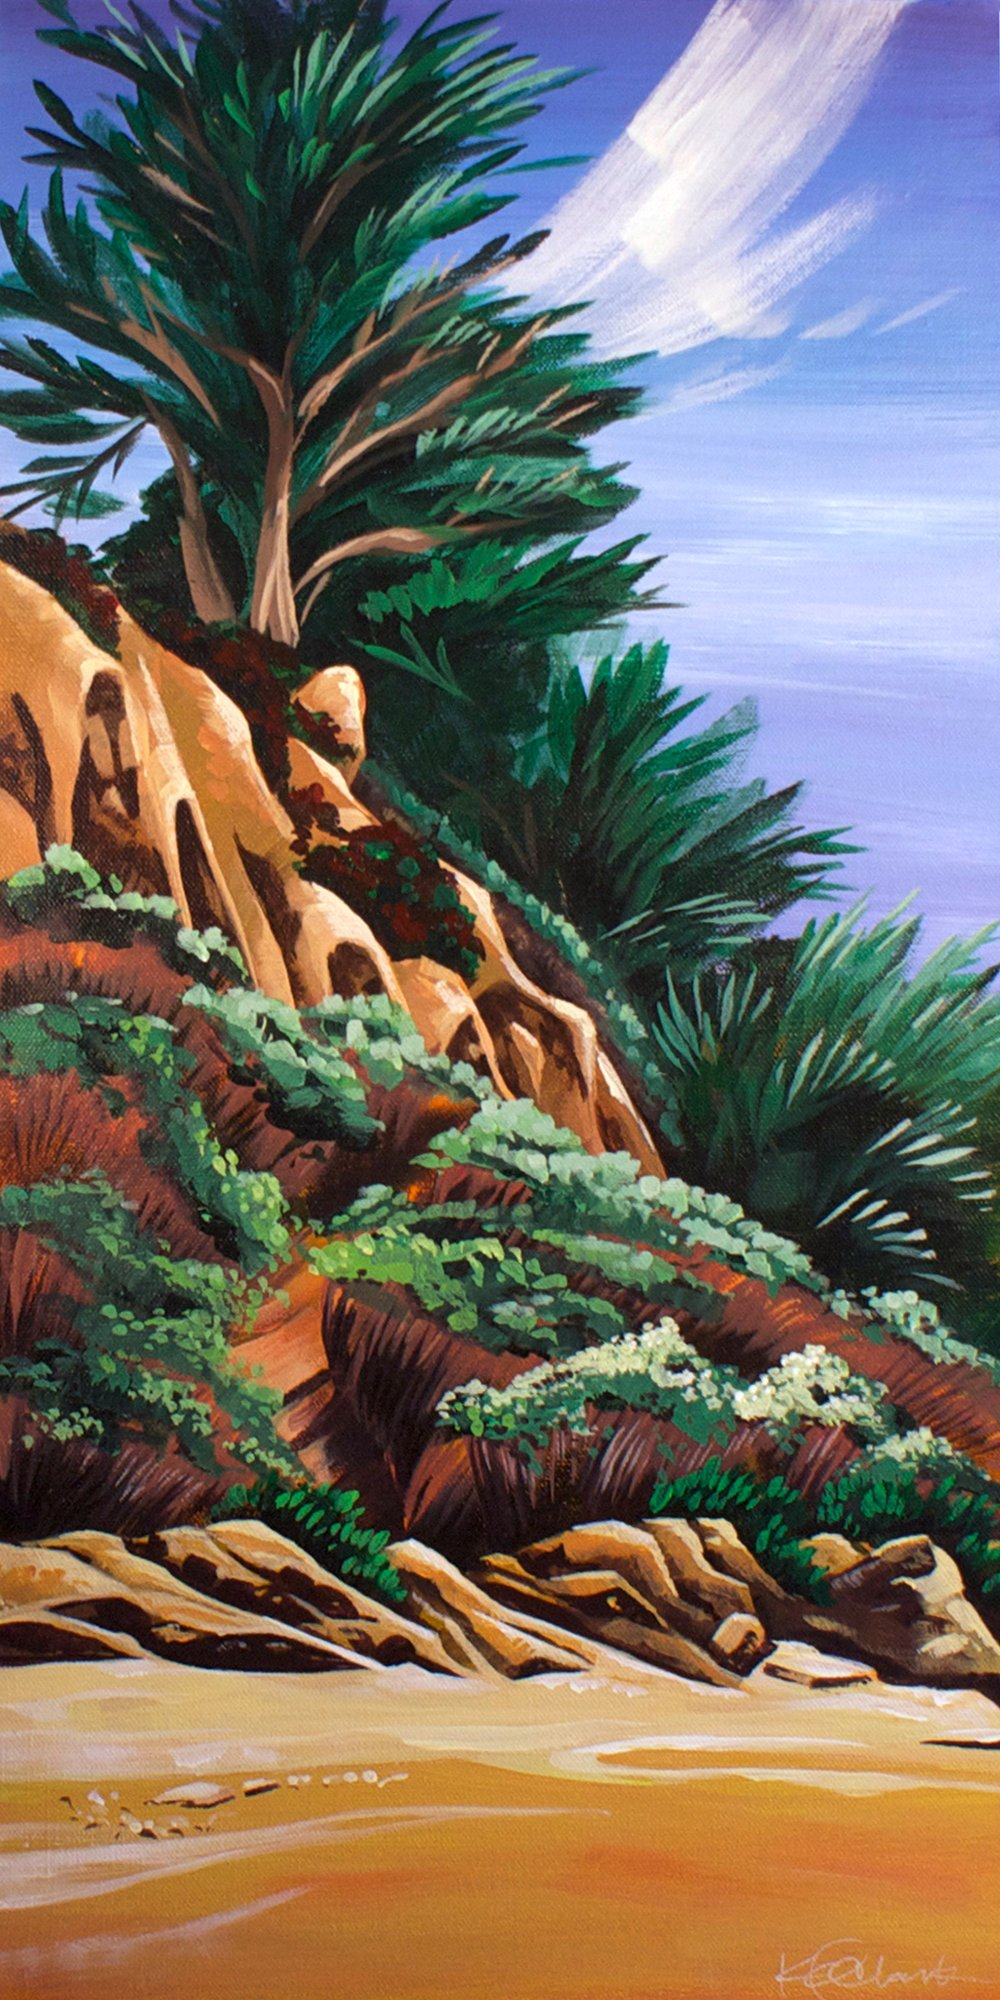 "JETTING CYPRESS | 12x24"" acrylic on canvas"